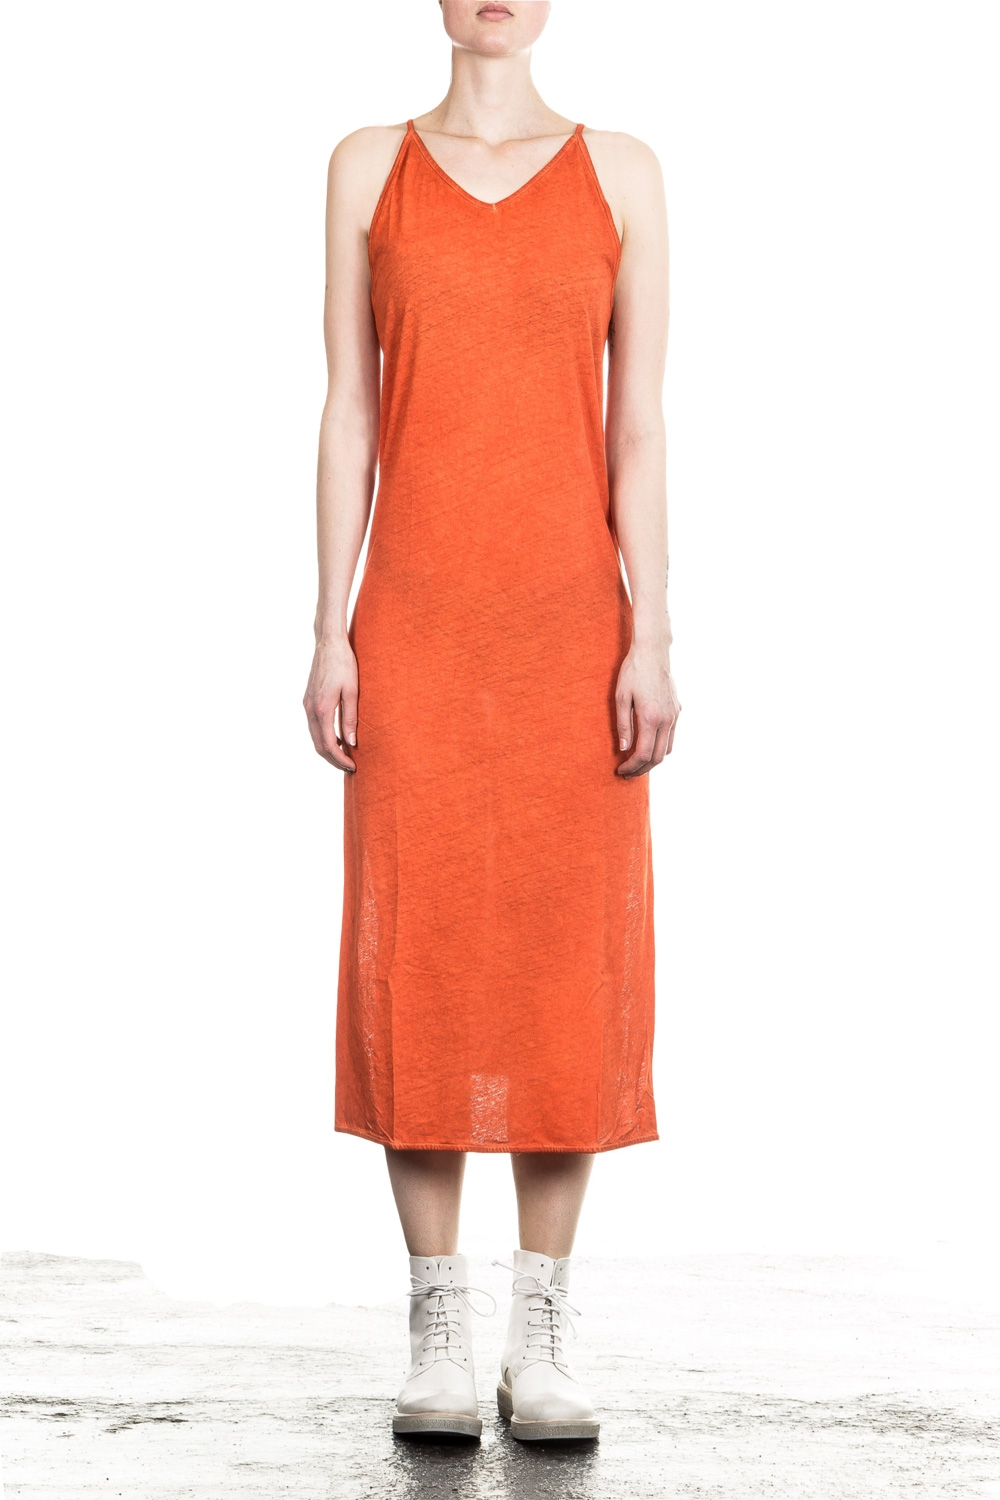 Kleider - Thom Krom Damen Kleid orange  - Onlineshop Luxury Loft